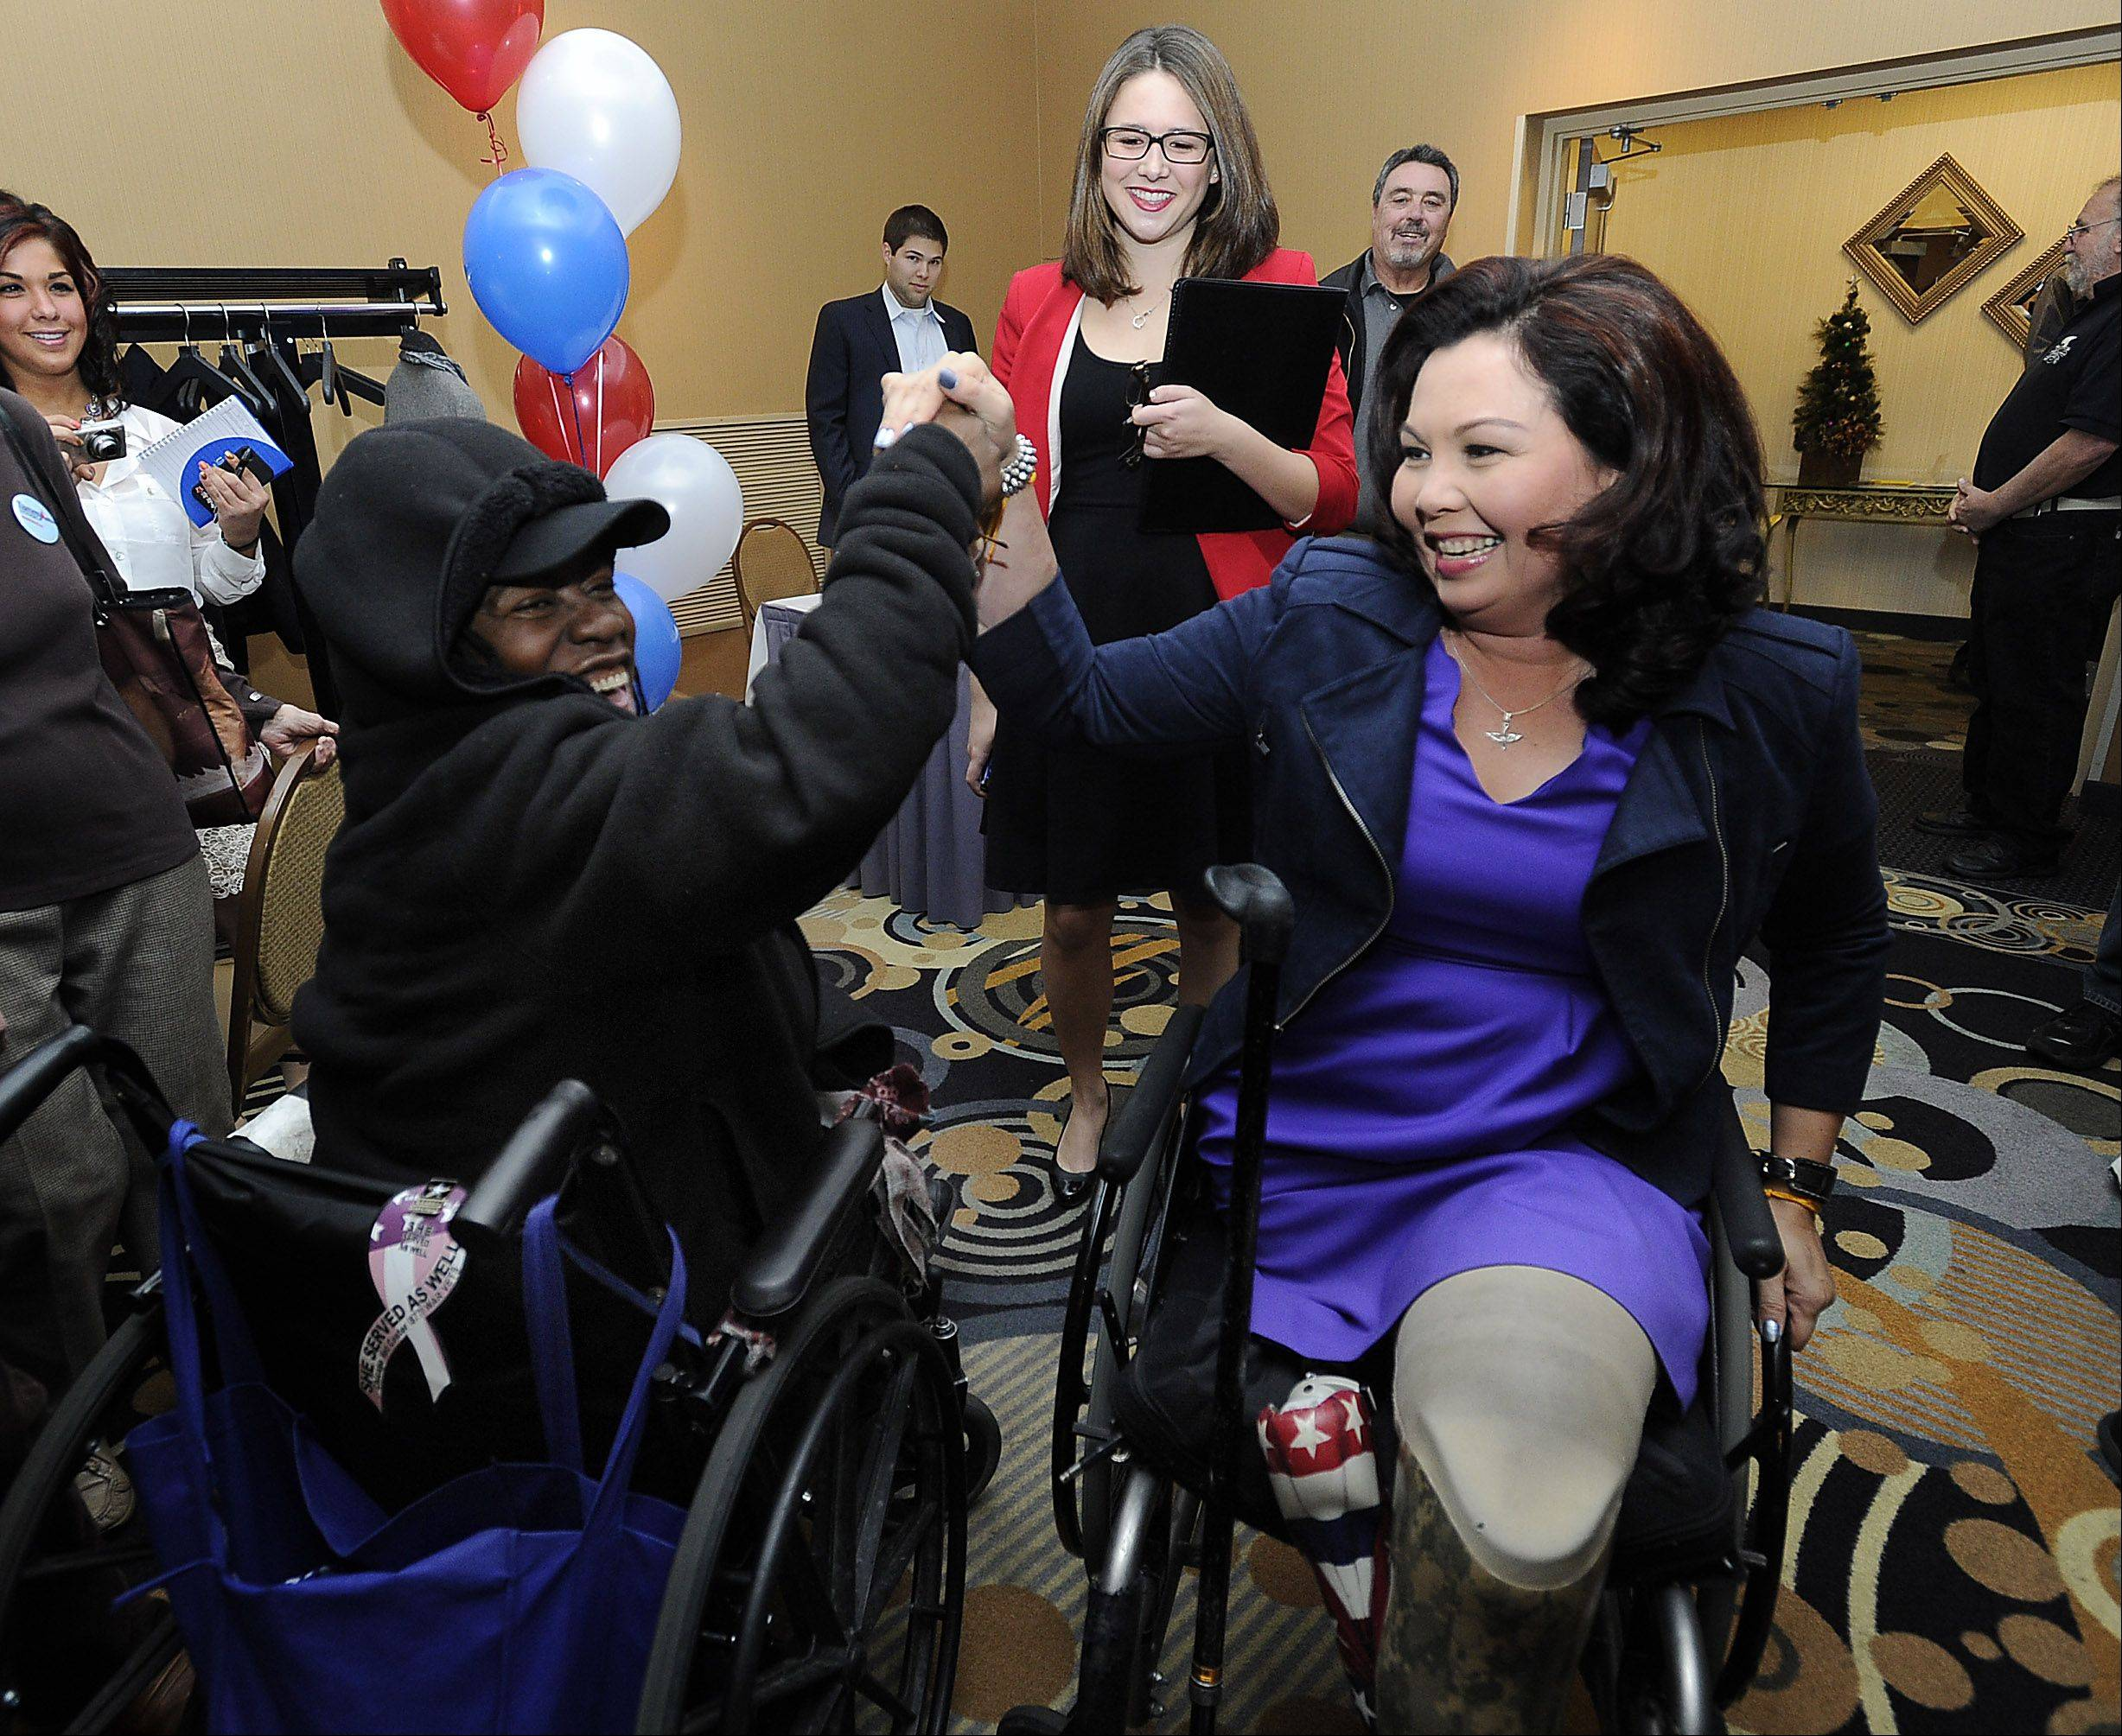 Congressman-elect Tammy Duckworth, an Iraq war veteran, will be sworn into the U.S. House of Representatives at the Disabled American Veterans office in Washington. Duckworth's office made the announcement Monday